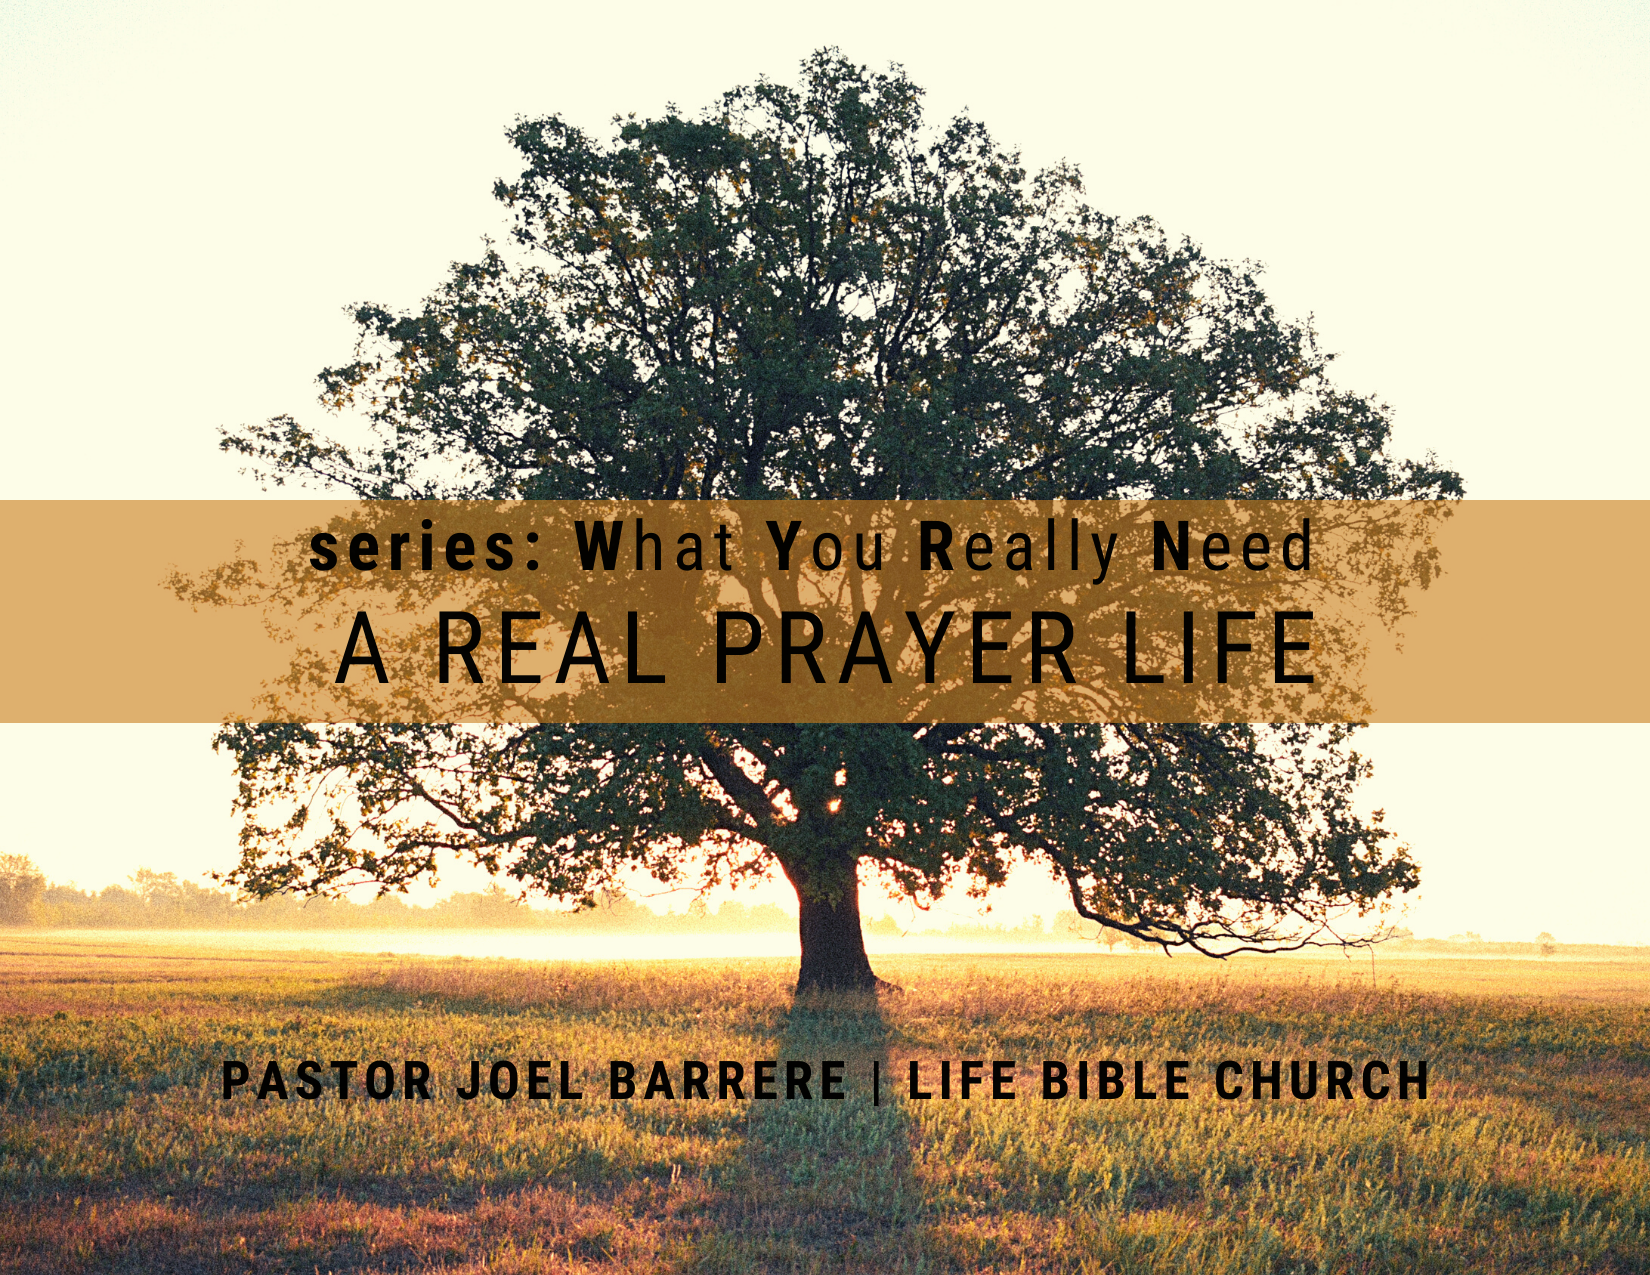 A Real Prayer Life Image